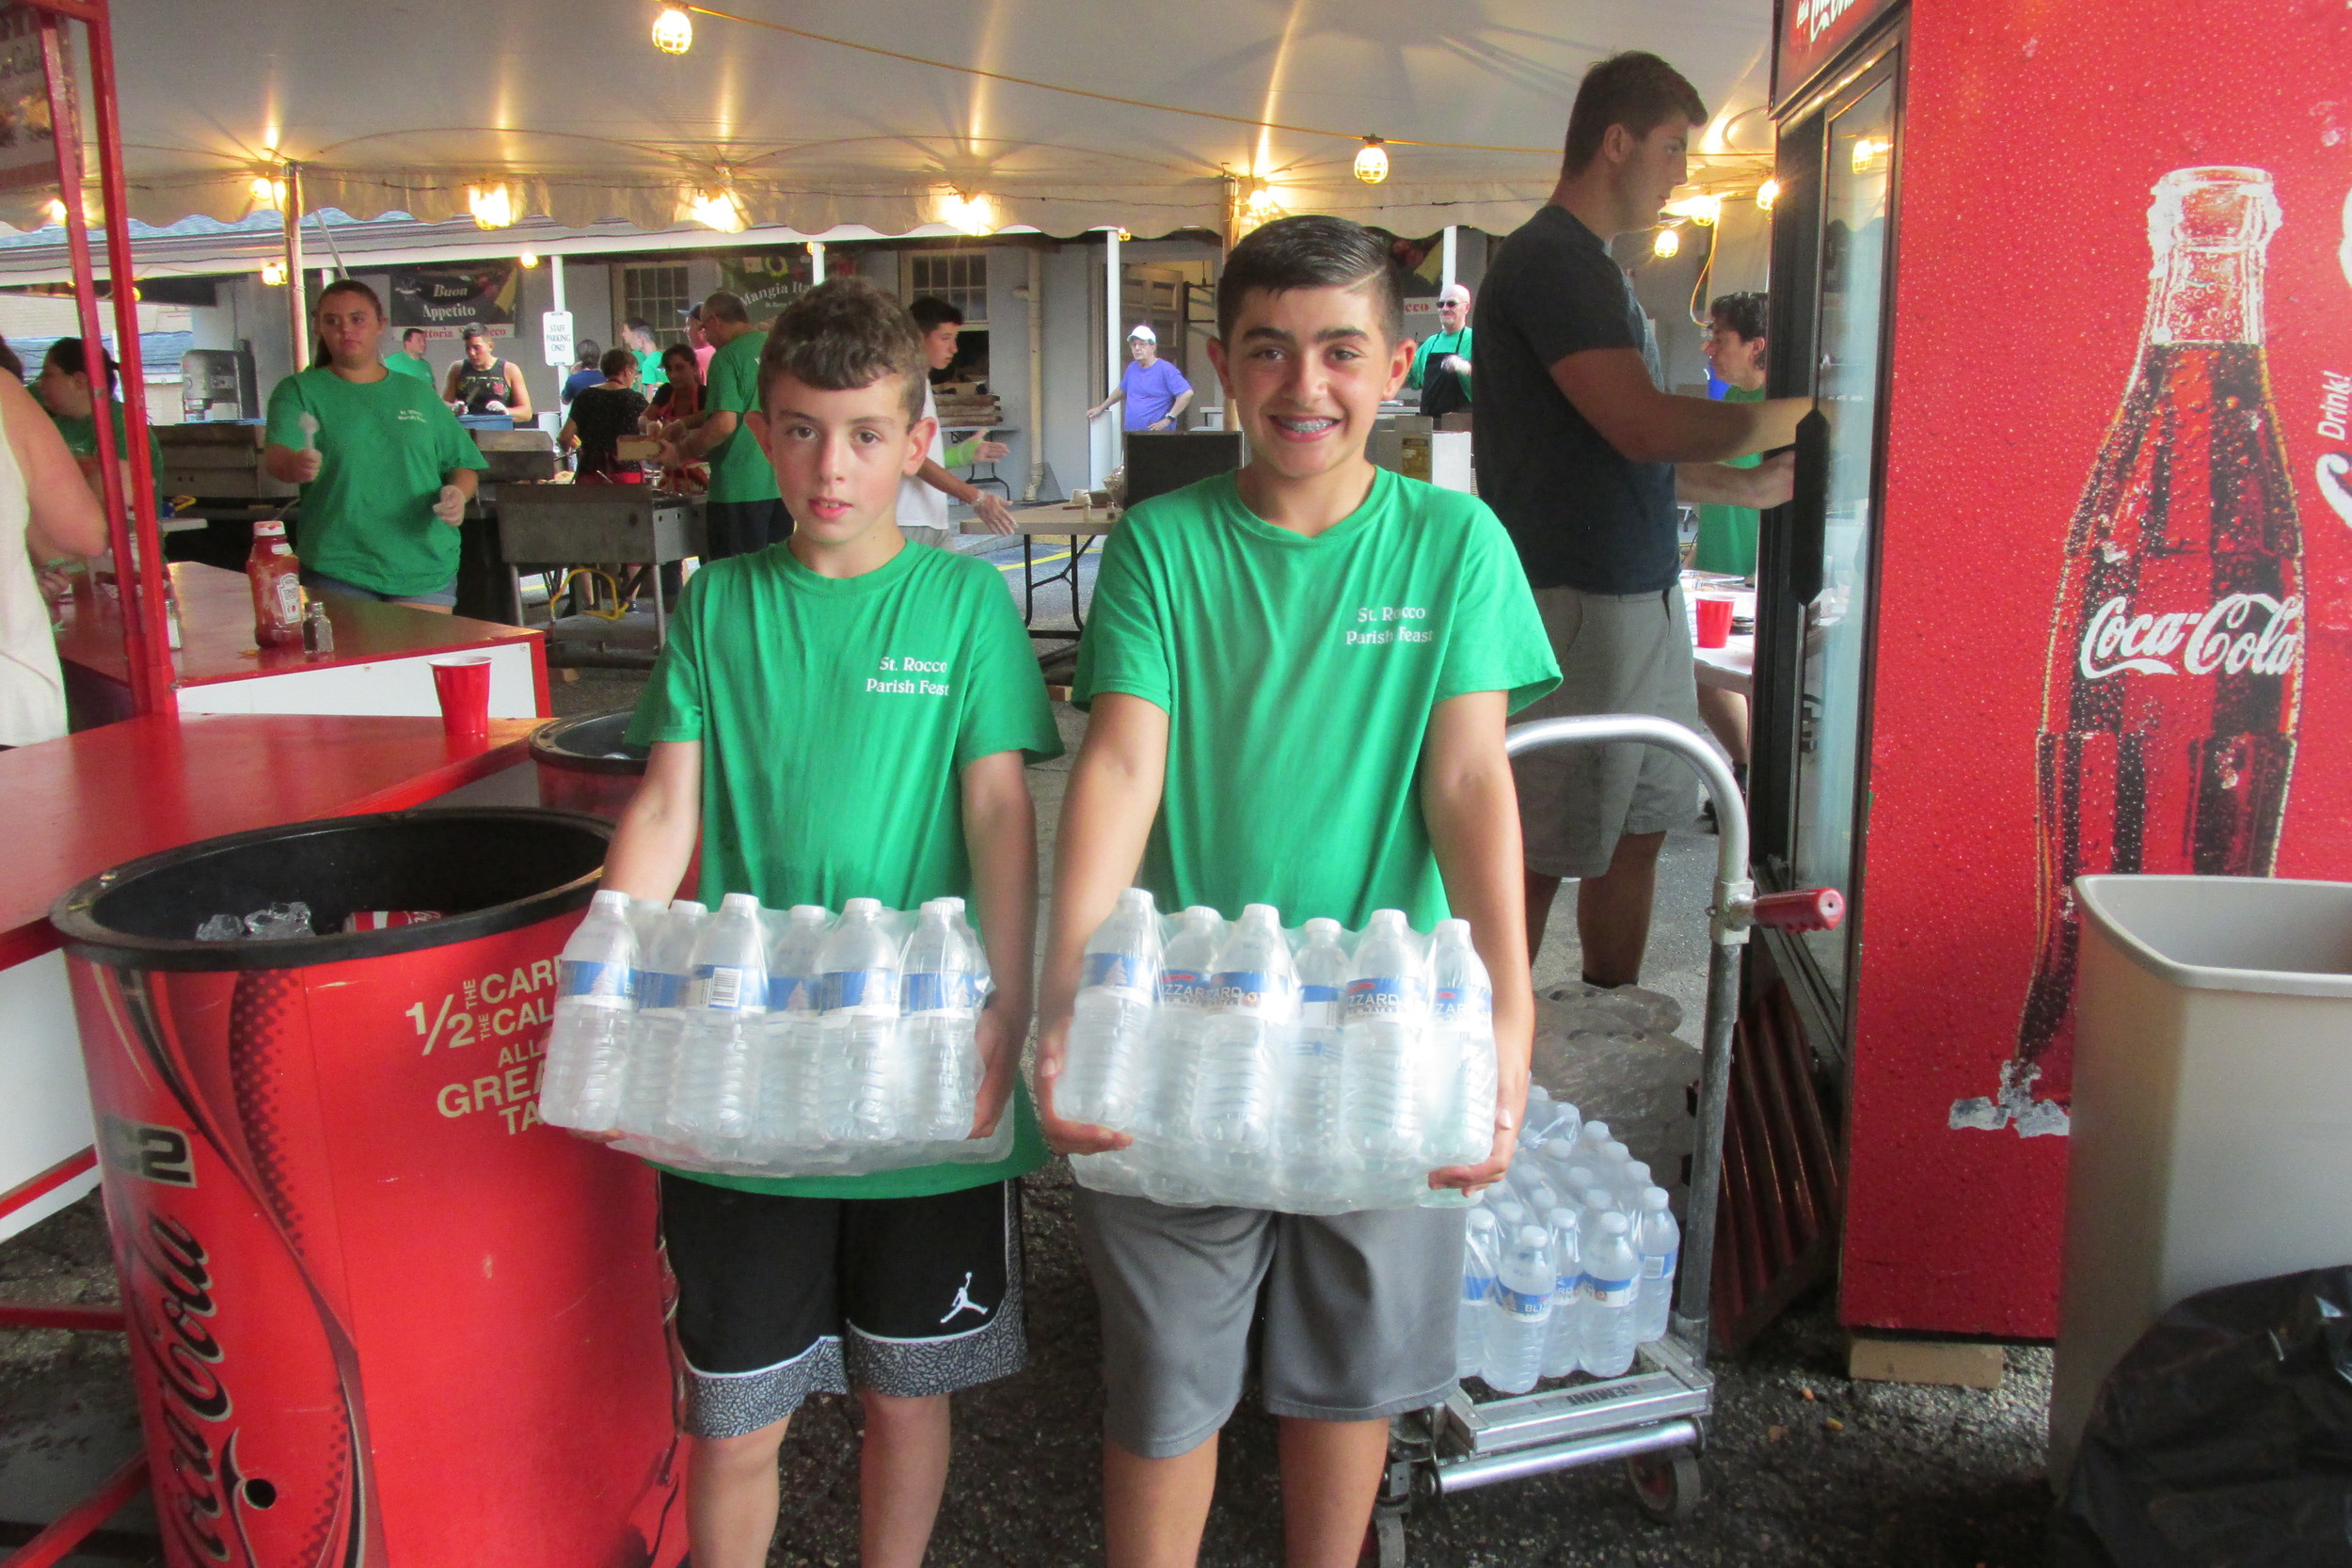 HELPING HANDS: Youngsters like Matt Pingatore and Jack Mooradian provided much valuable help by keeping the bottled water on ice during Sunday's Feast and Festival in Johnston.